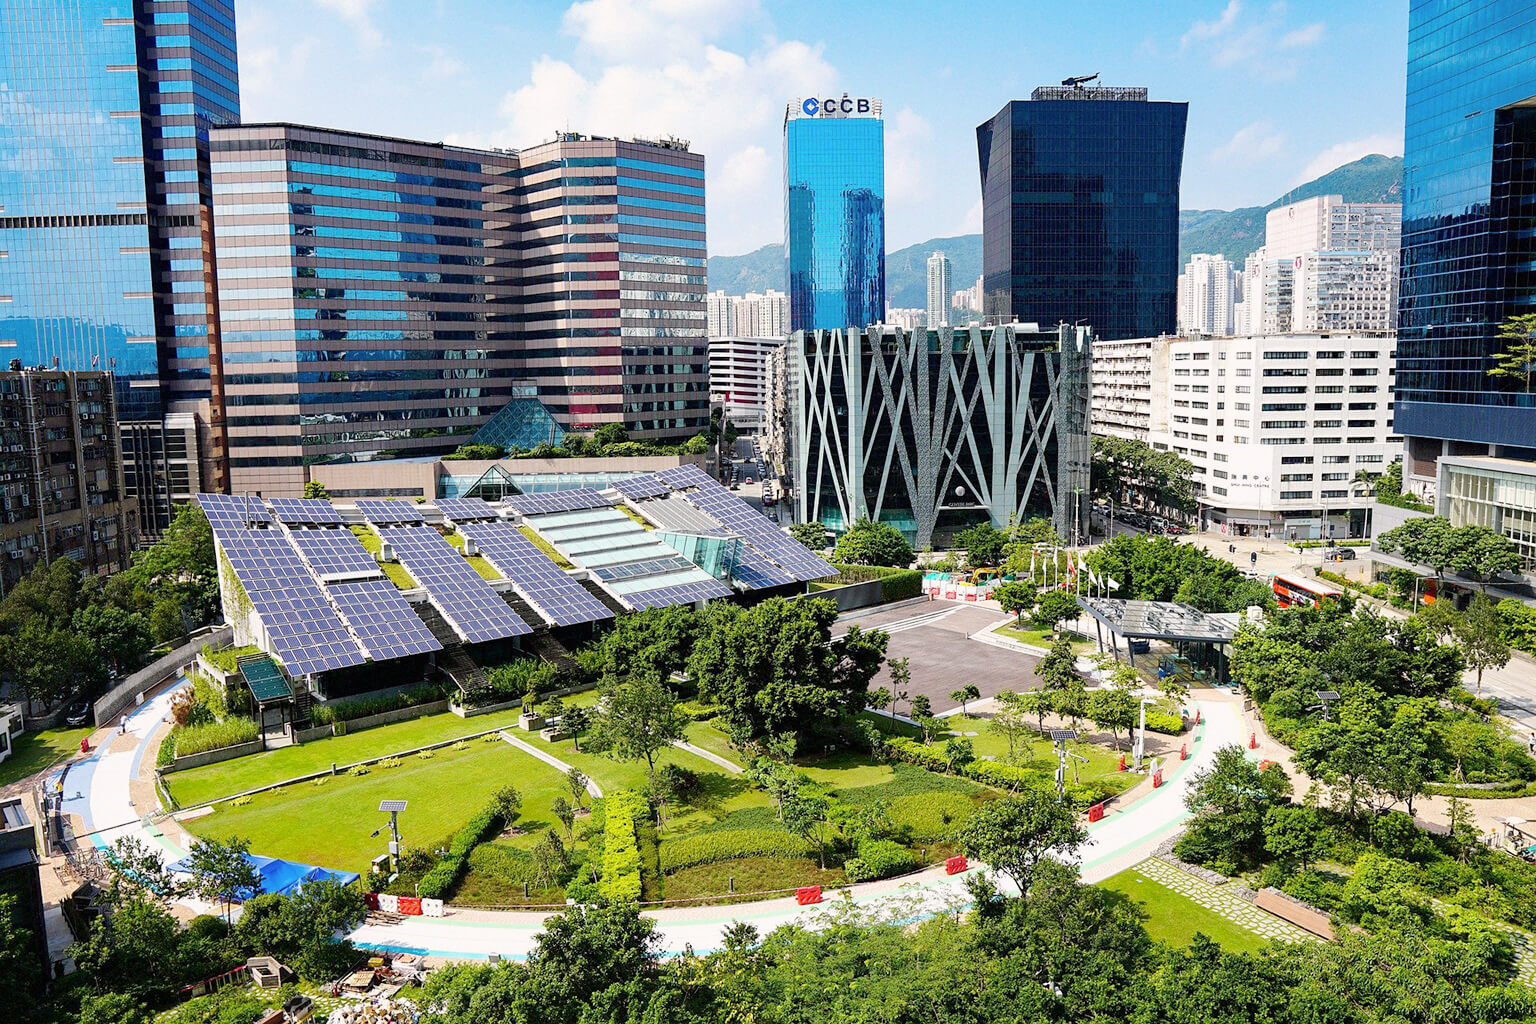 View of a city with tall buildings and large amounts of green space and solar panels.